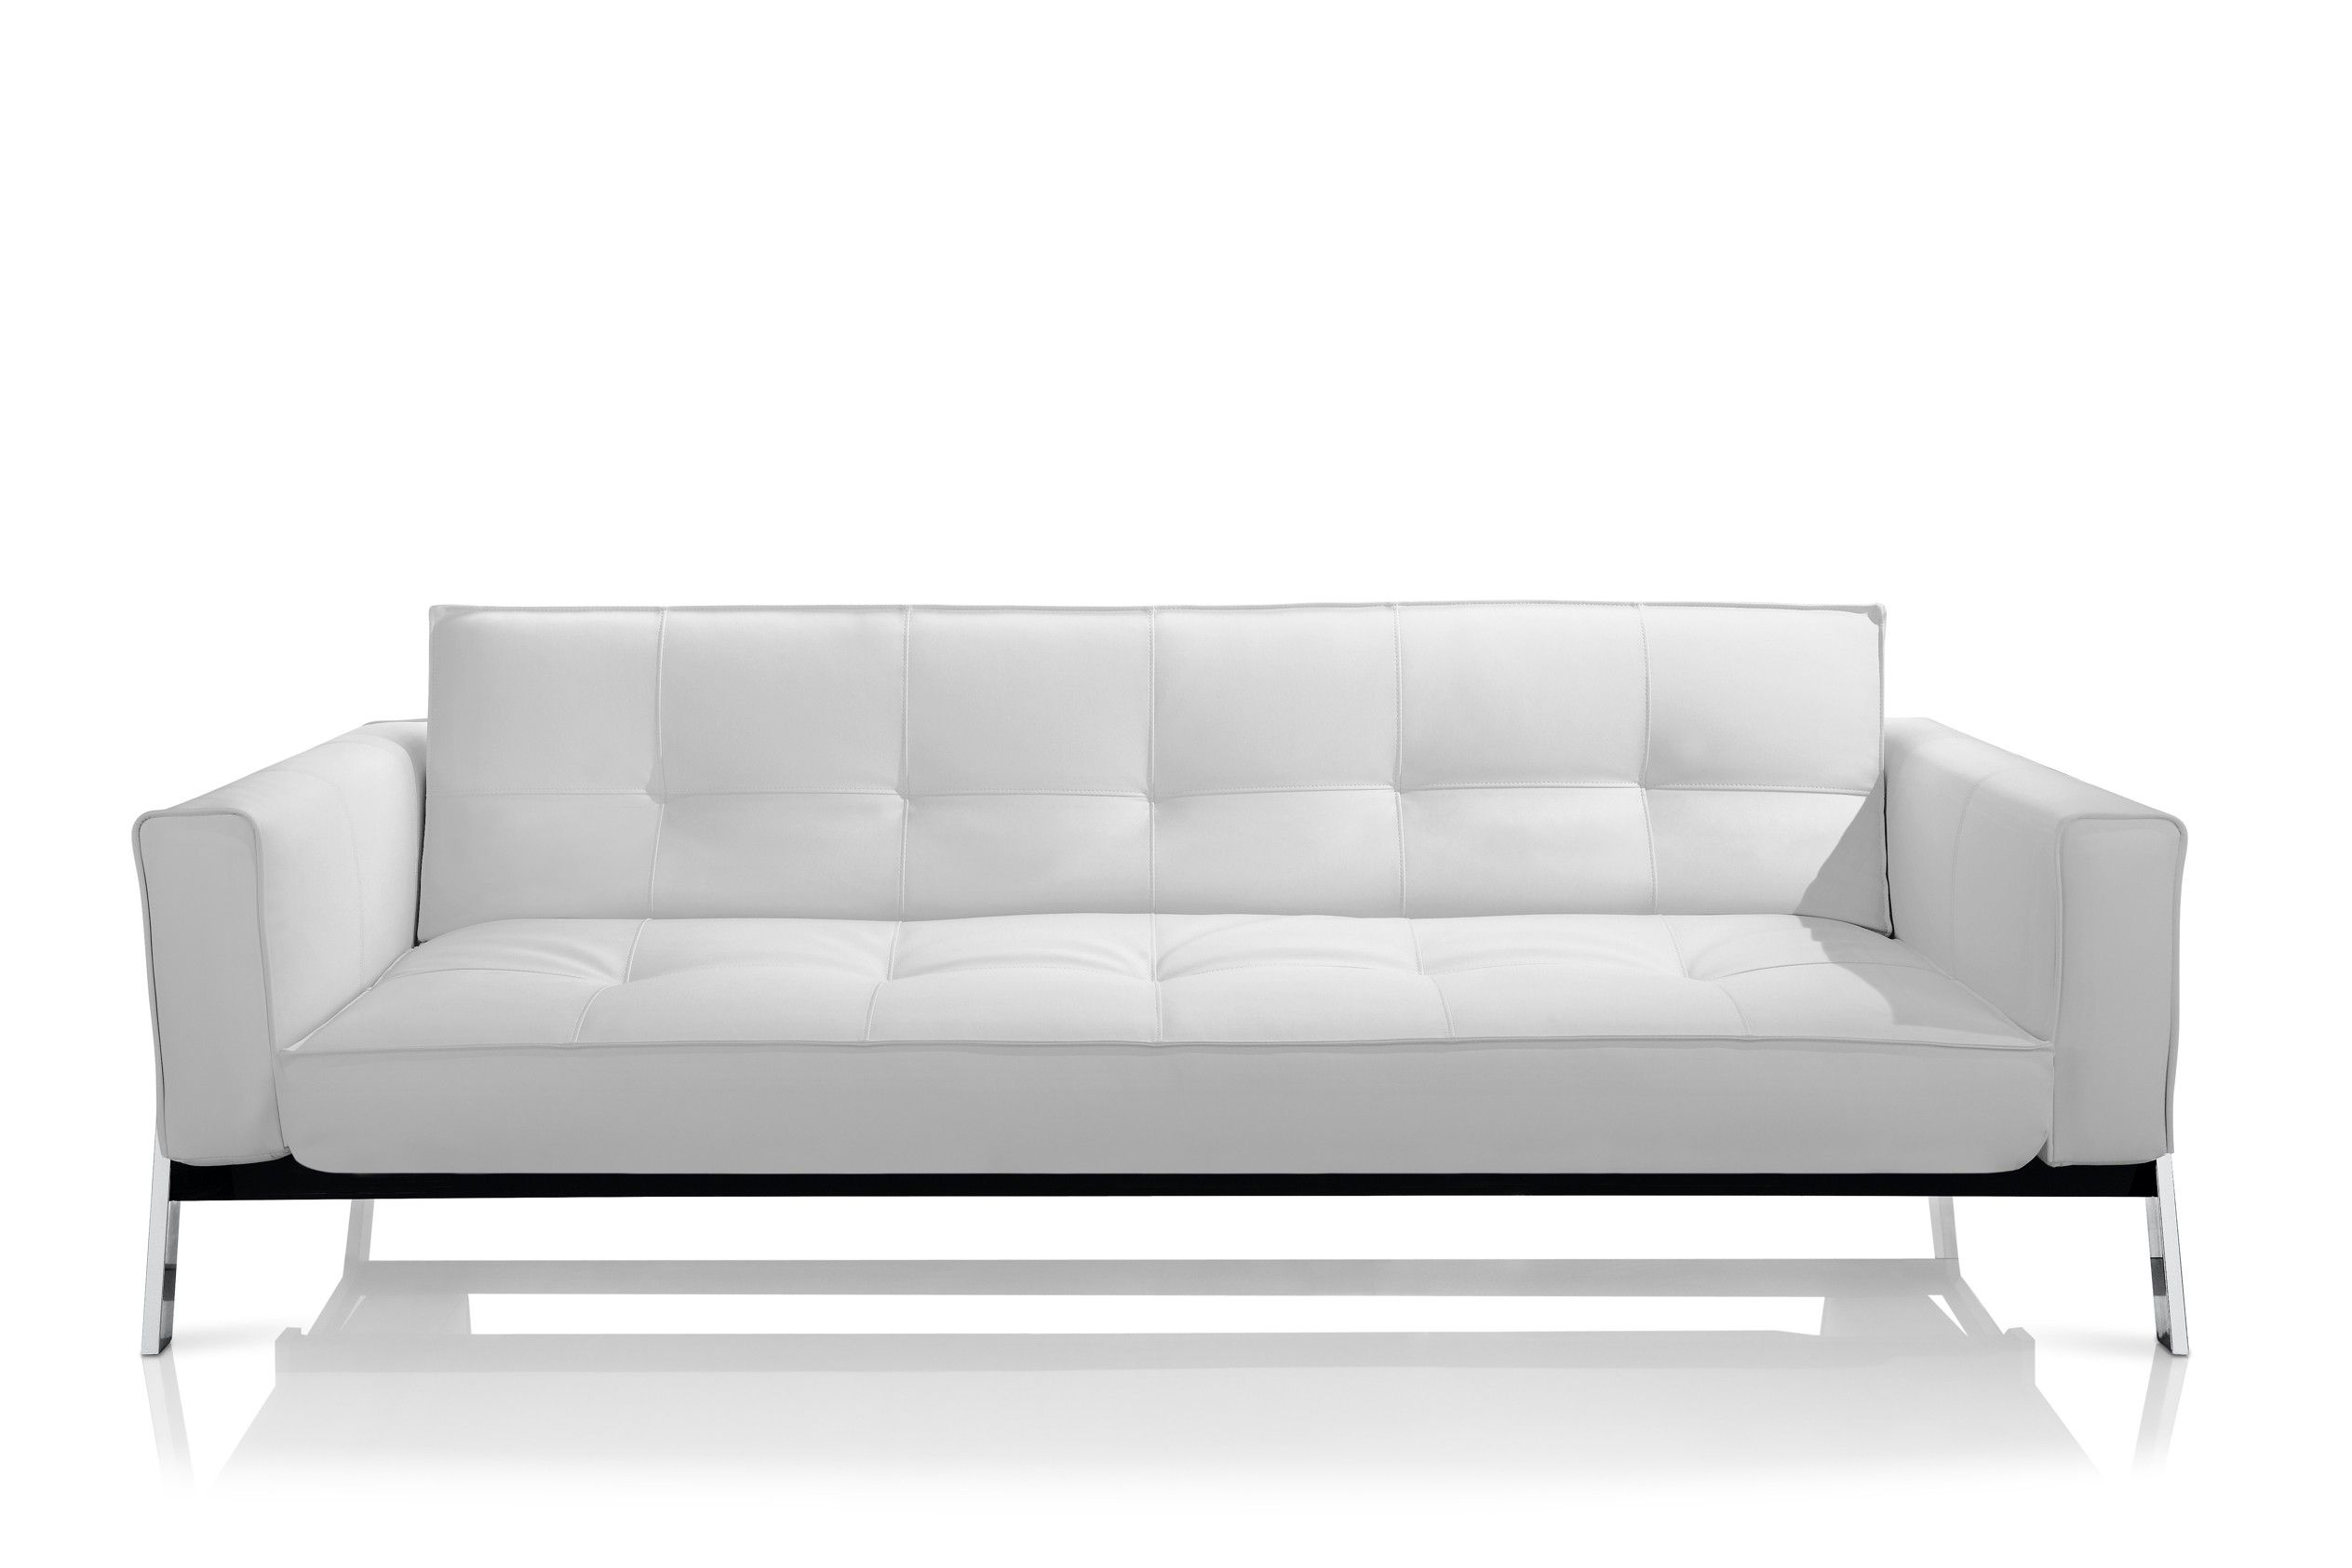 modern sofa bed with modern design and white color   The Modern Sofa Bed  Space Saver Furniture. awesome White Modern Couch   Amazing White Modern Couch 95 For